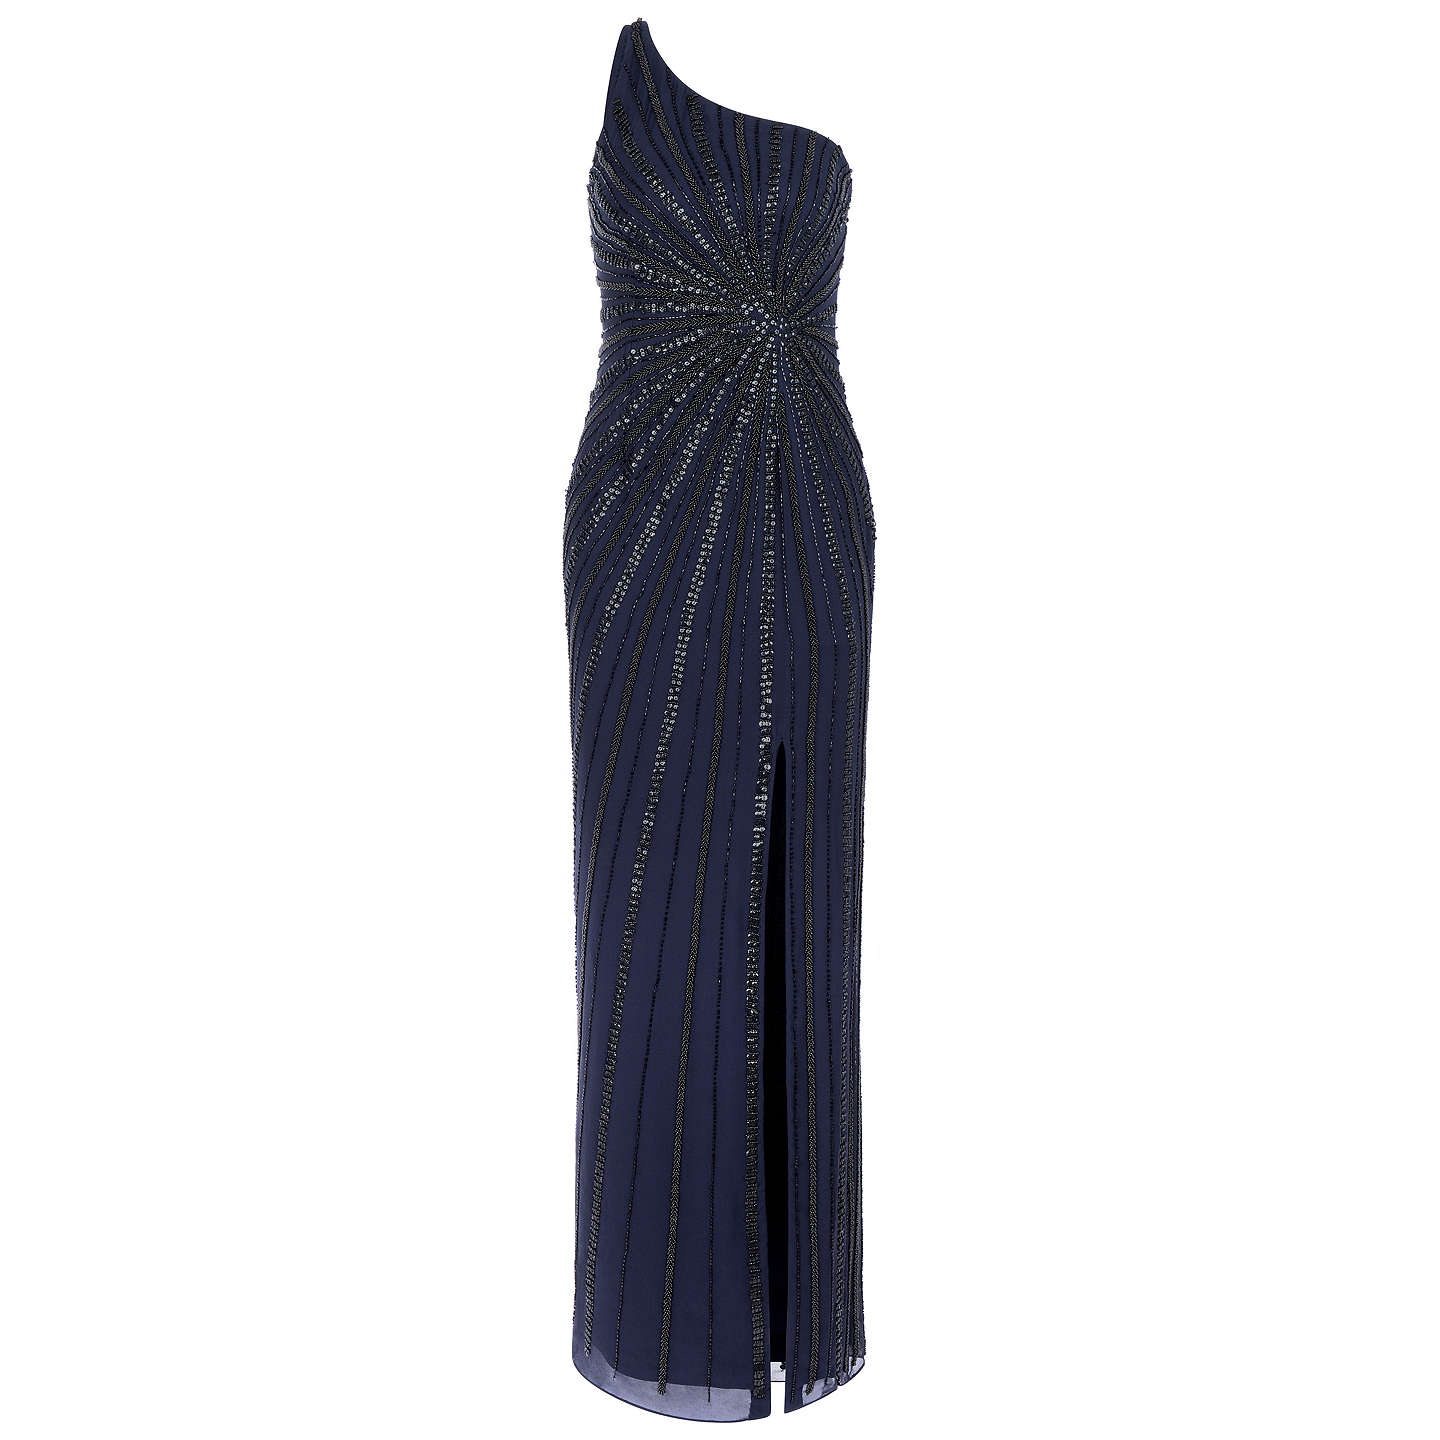 BuyAdrianna Papell One Shoulder Long Dress, Midnight, 12 Online at johnlewis.com